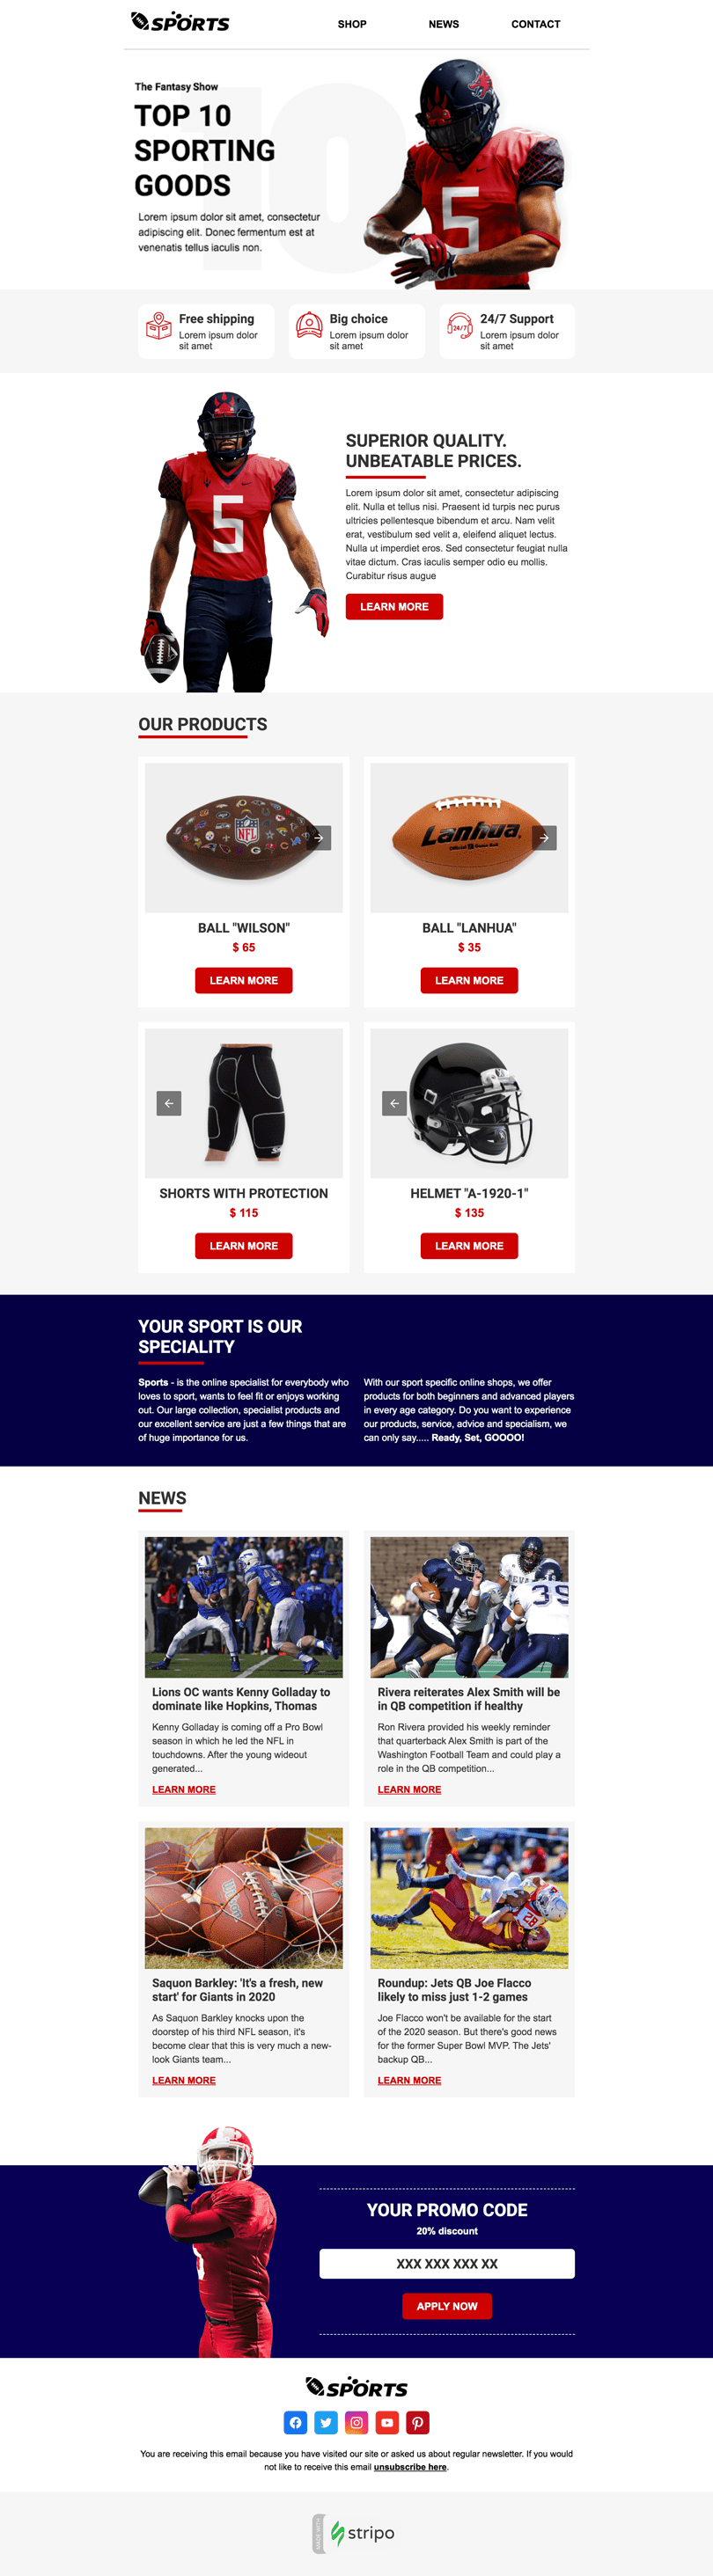 Super Bowl Email Template «Games Time» for Sports industry desktop view